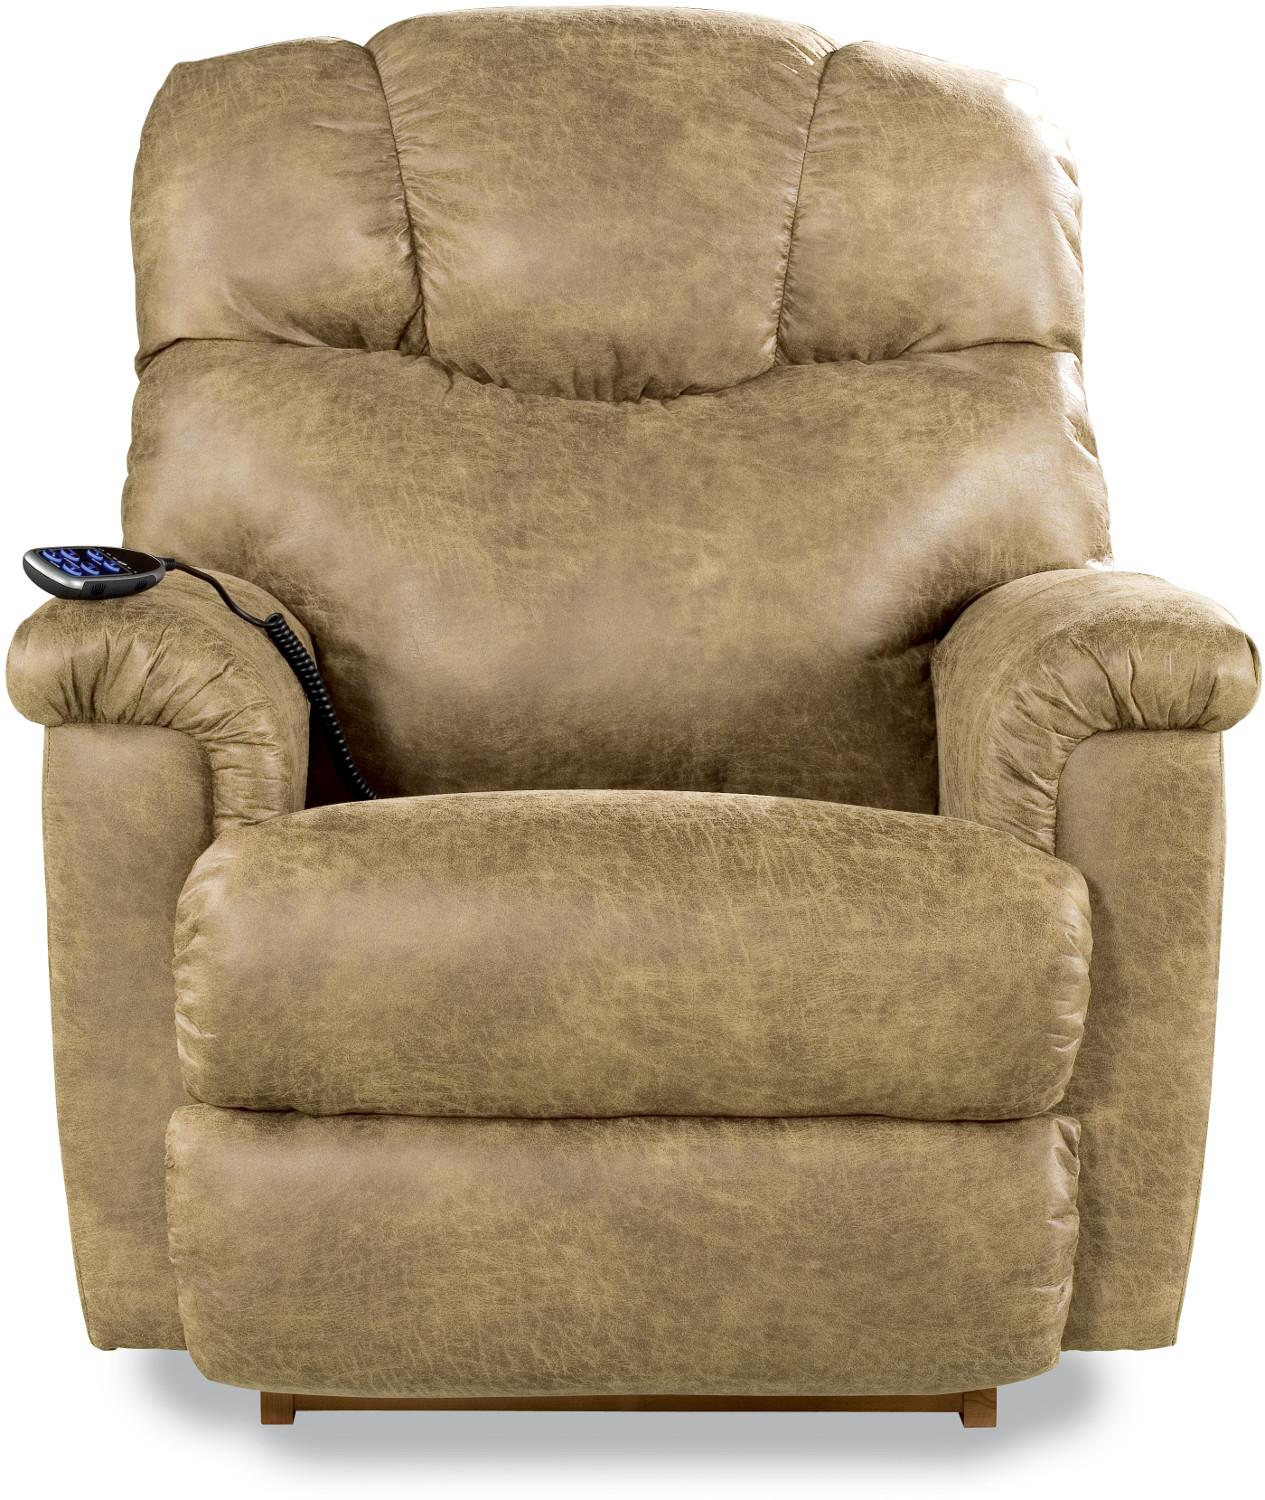 Lancer Power Wall Recliner w/ Headrest & Lumbar by La-Z-Boy at Godby Home Furnishings